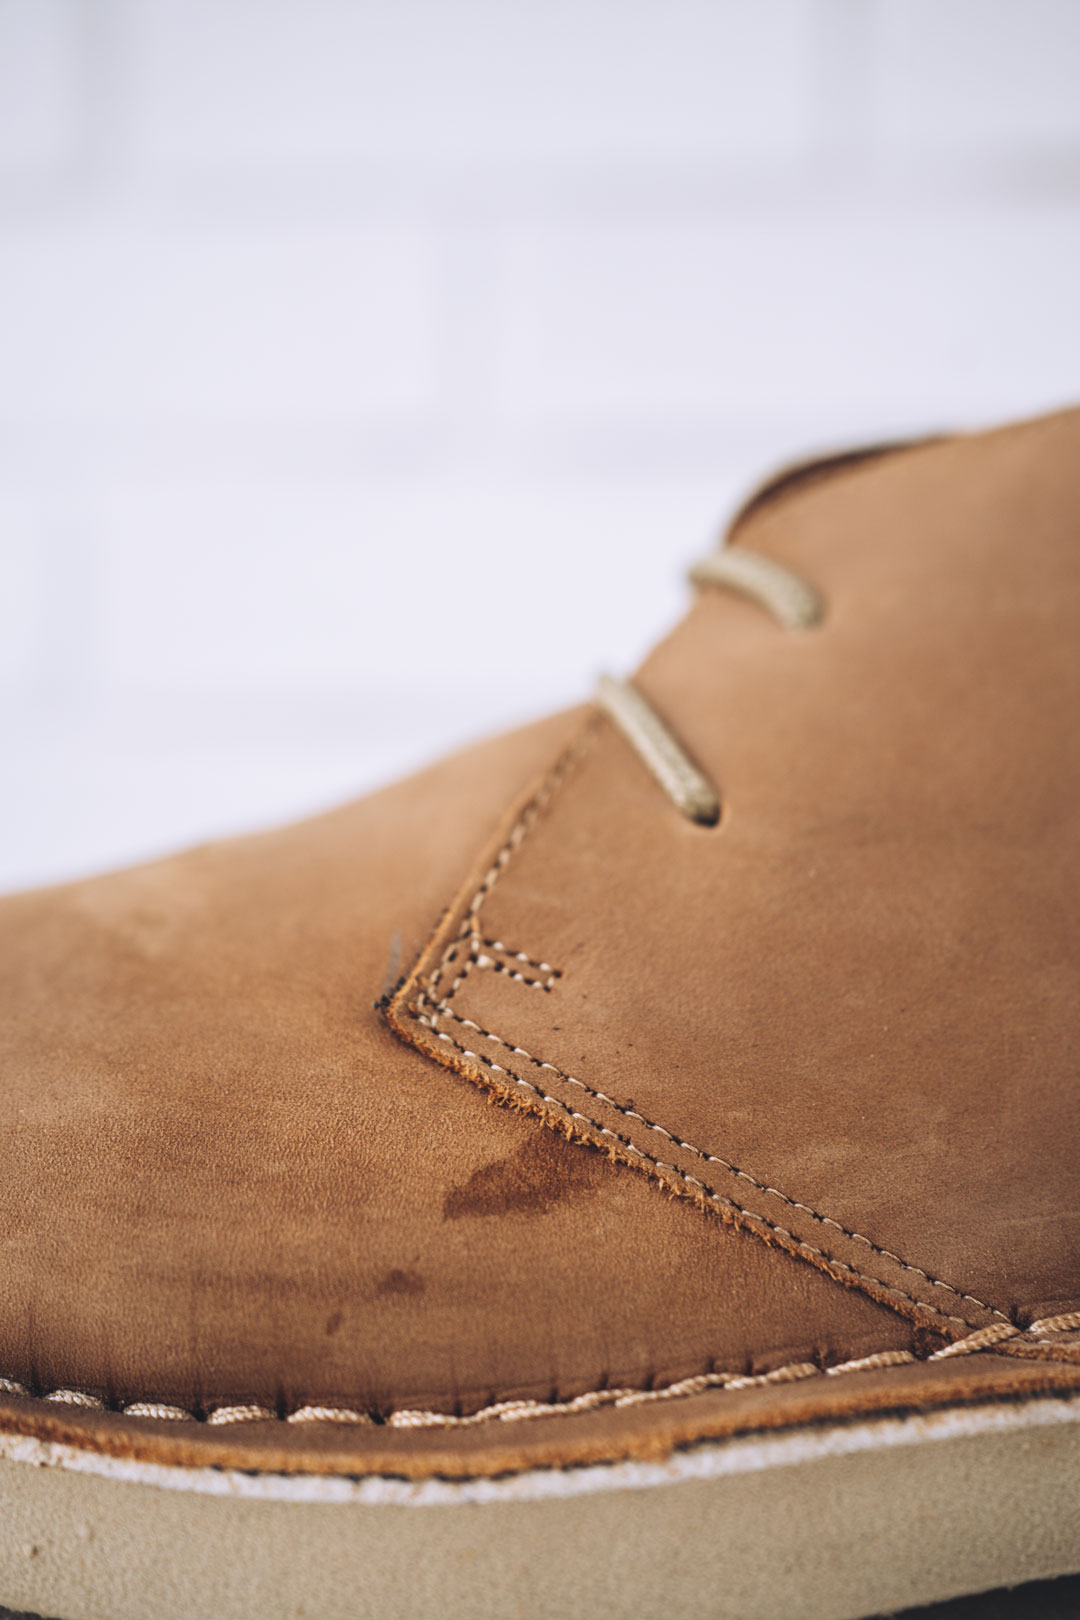 ankle boot with factory glue and needle mark